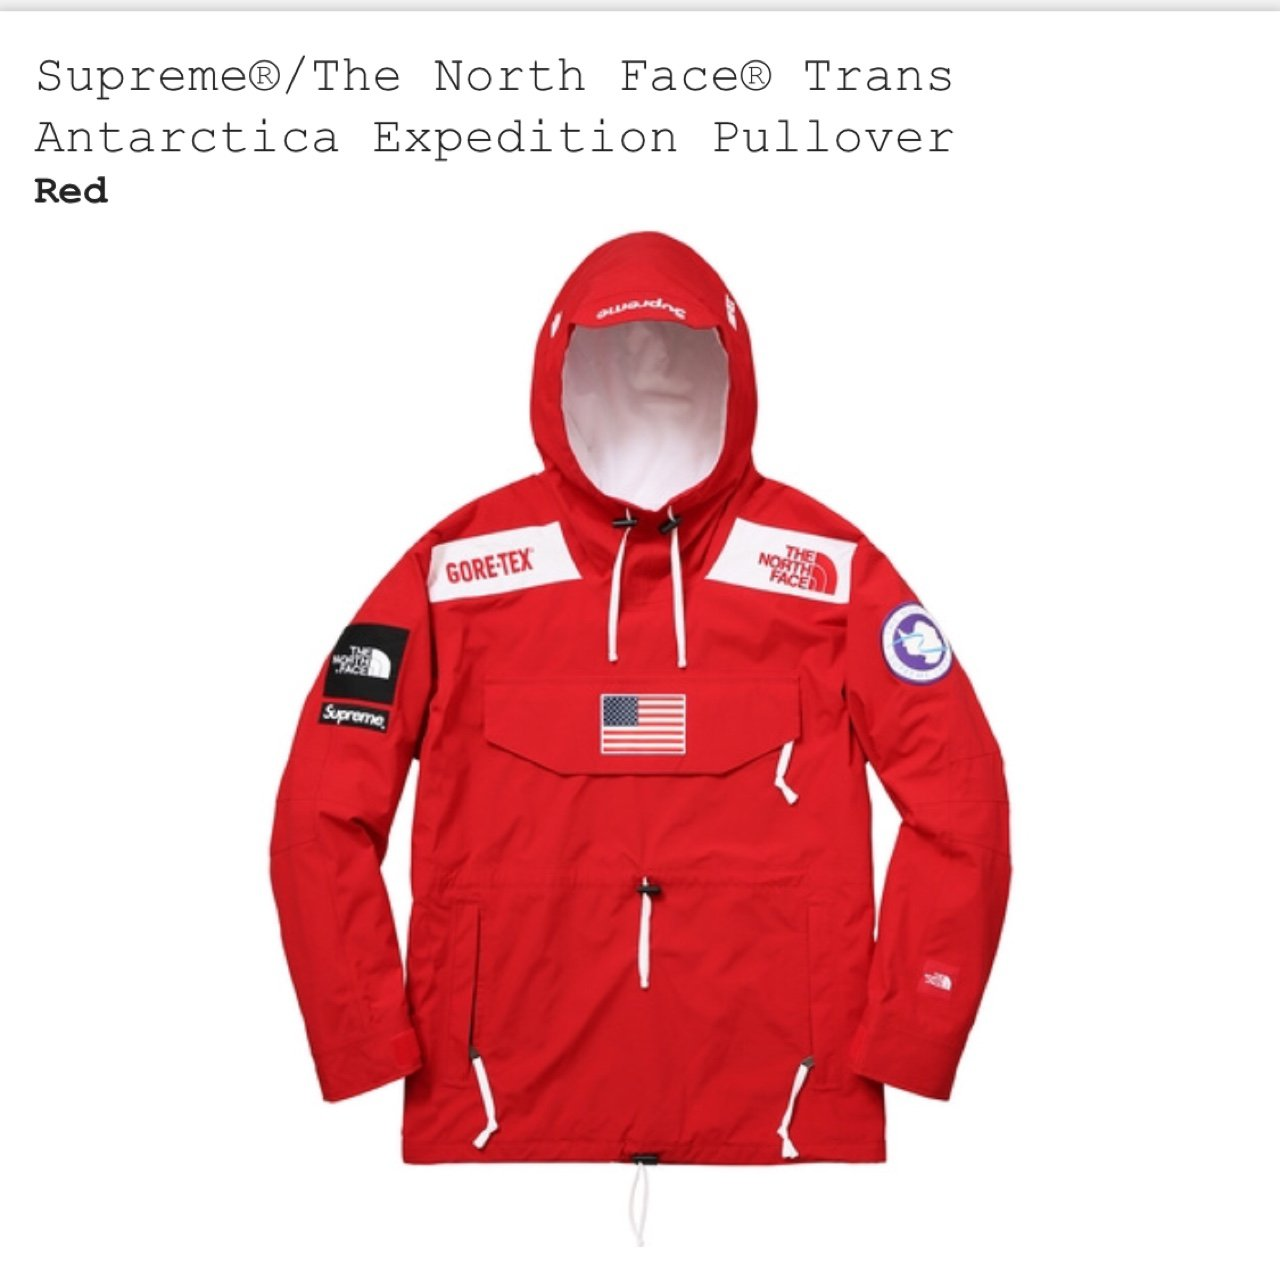 Linhtran2804 2 Years Ago Fairfax Va Usa Supreme X The North Face Pullover Jacket Red